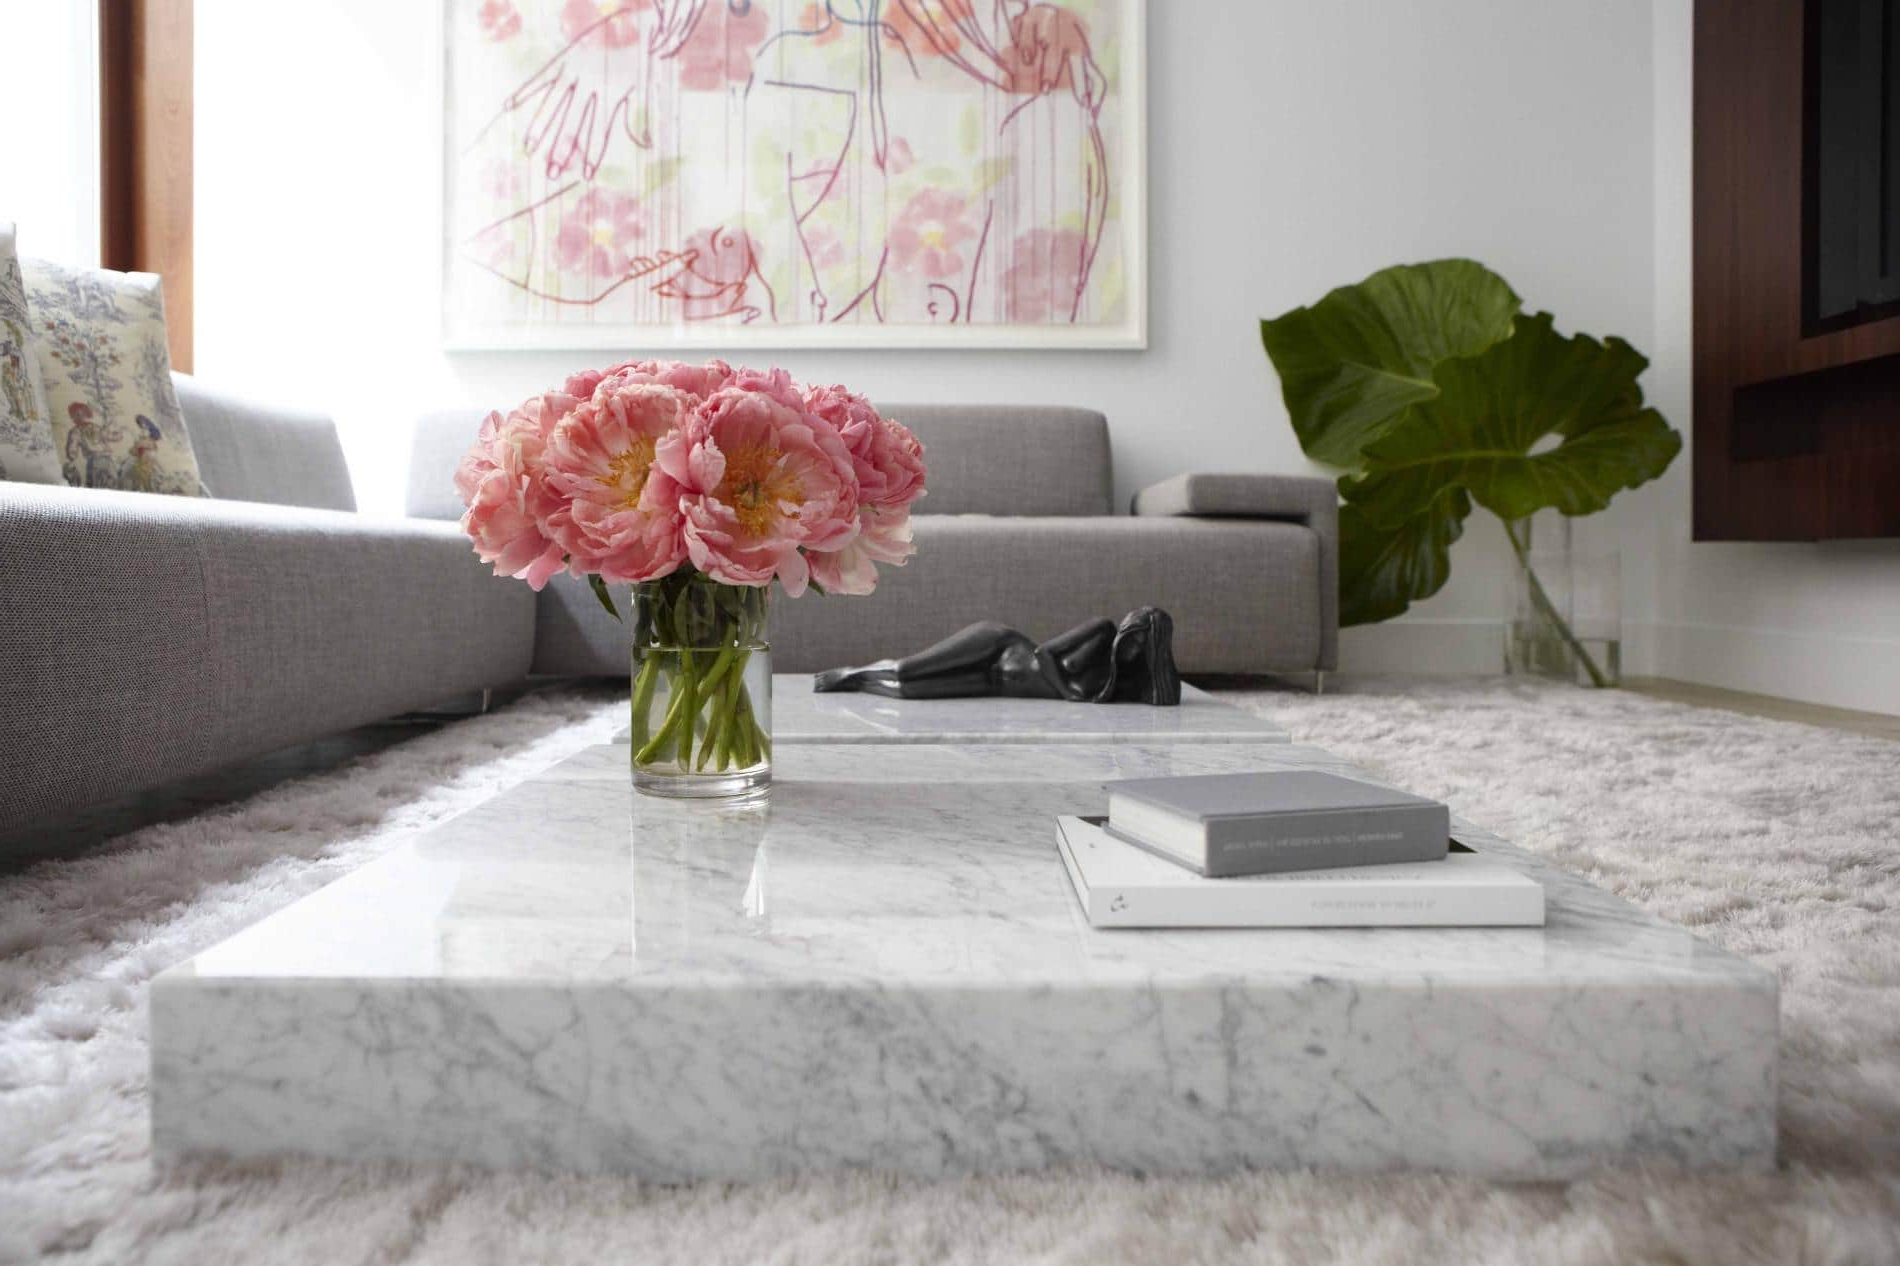 Current Large Slab Marble Coffee Tables With Antiqued Silver Base With Marble Coffee Table Design, Style Ideas And Tips – Sefa Stone (View 4 of 20)